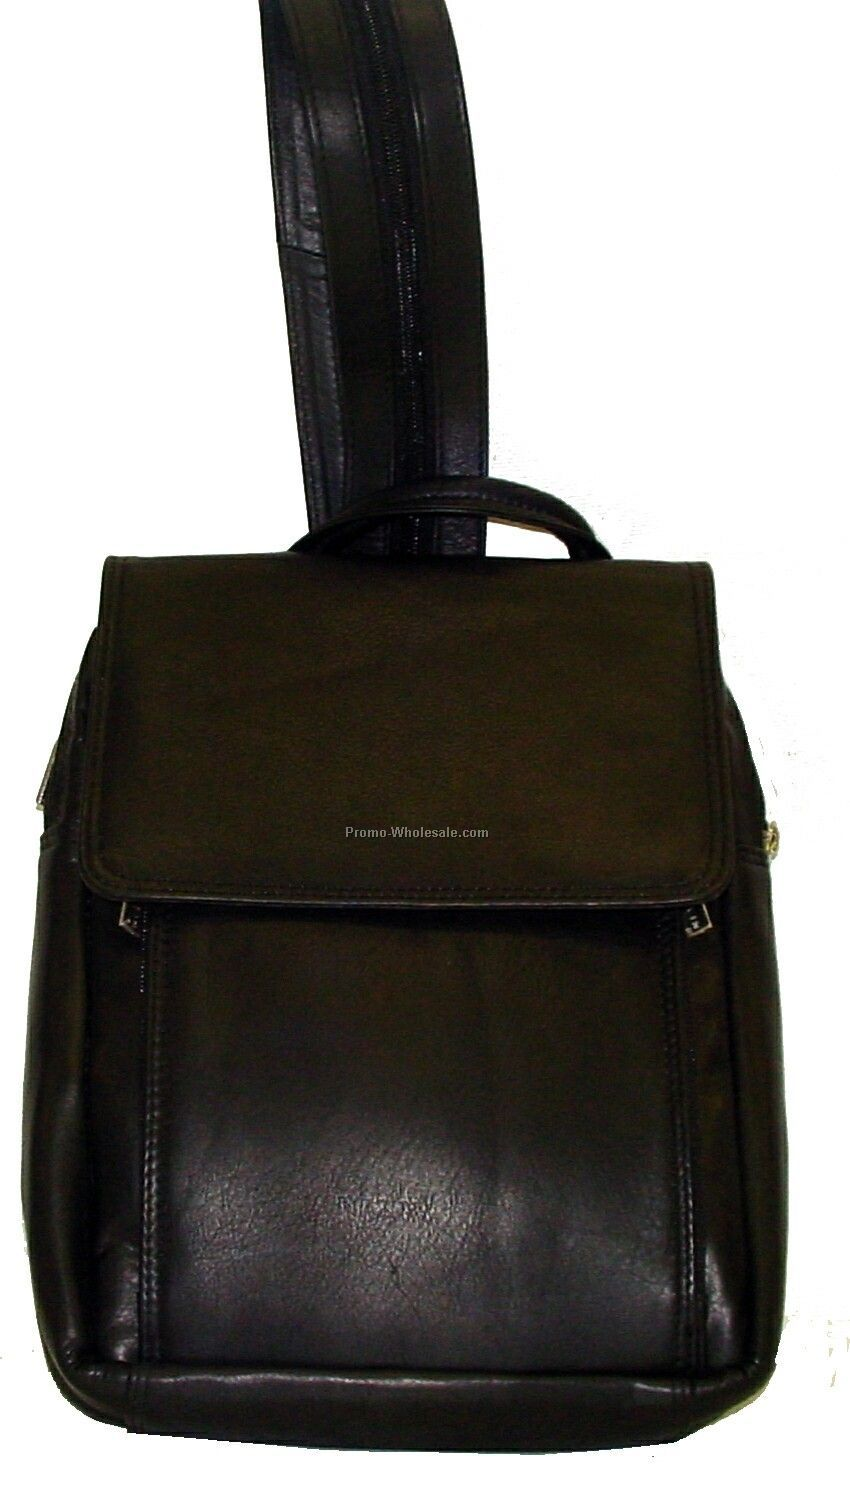 30cmx37cmx16cm Black Cowhide Annie's Day Pack Knapsack Backpack